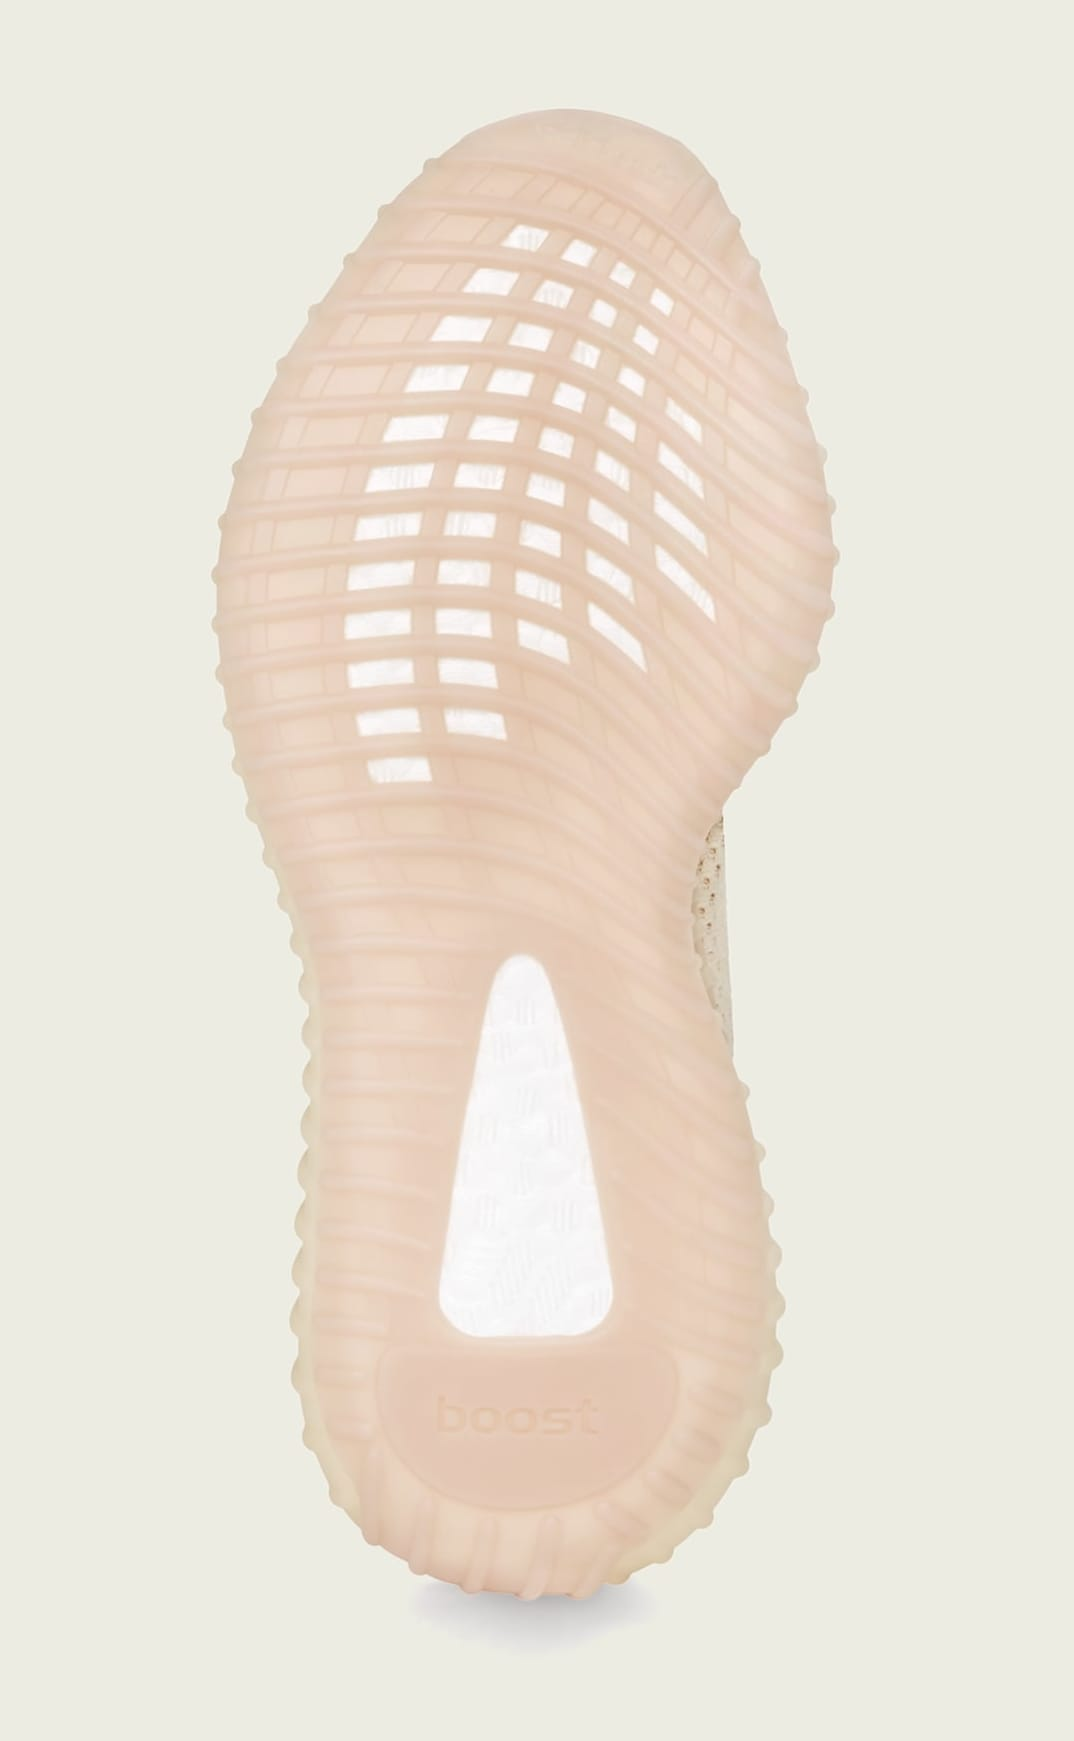 Adidas Yeezy Boost 350 V2 'Linen' FY5158 Outsole